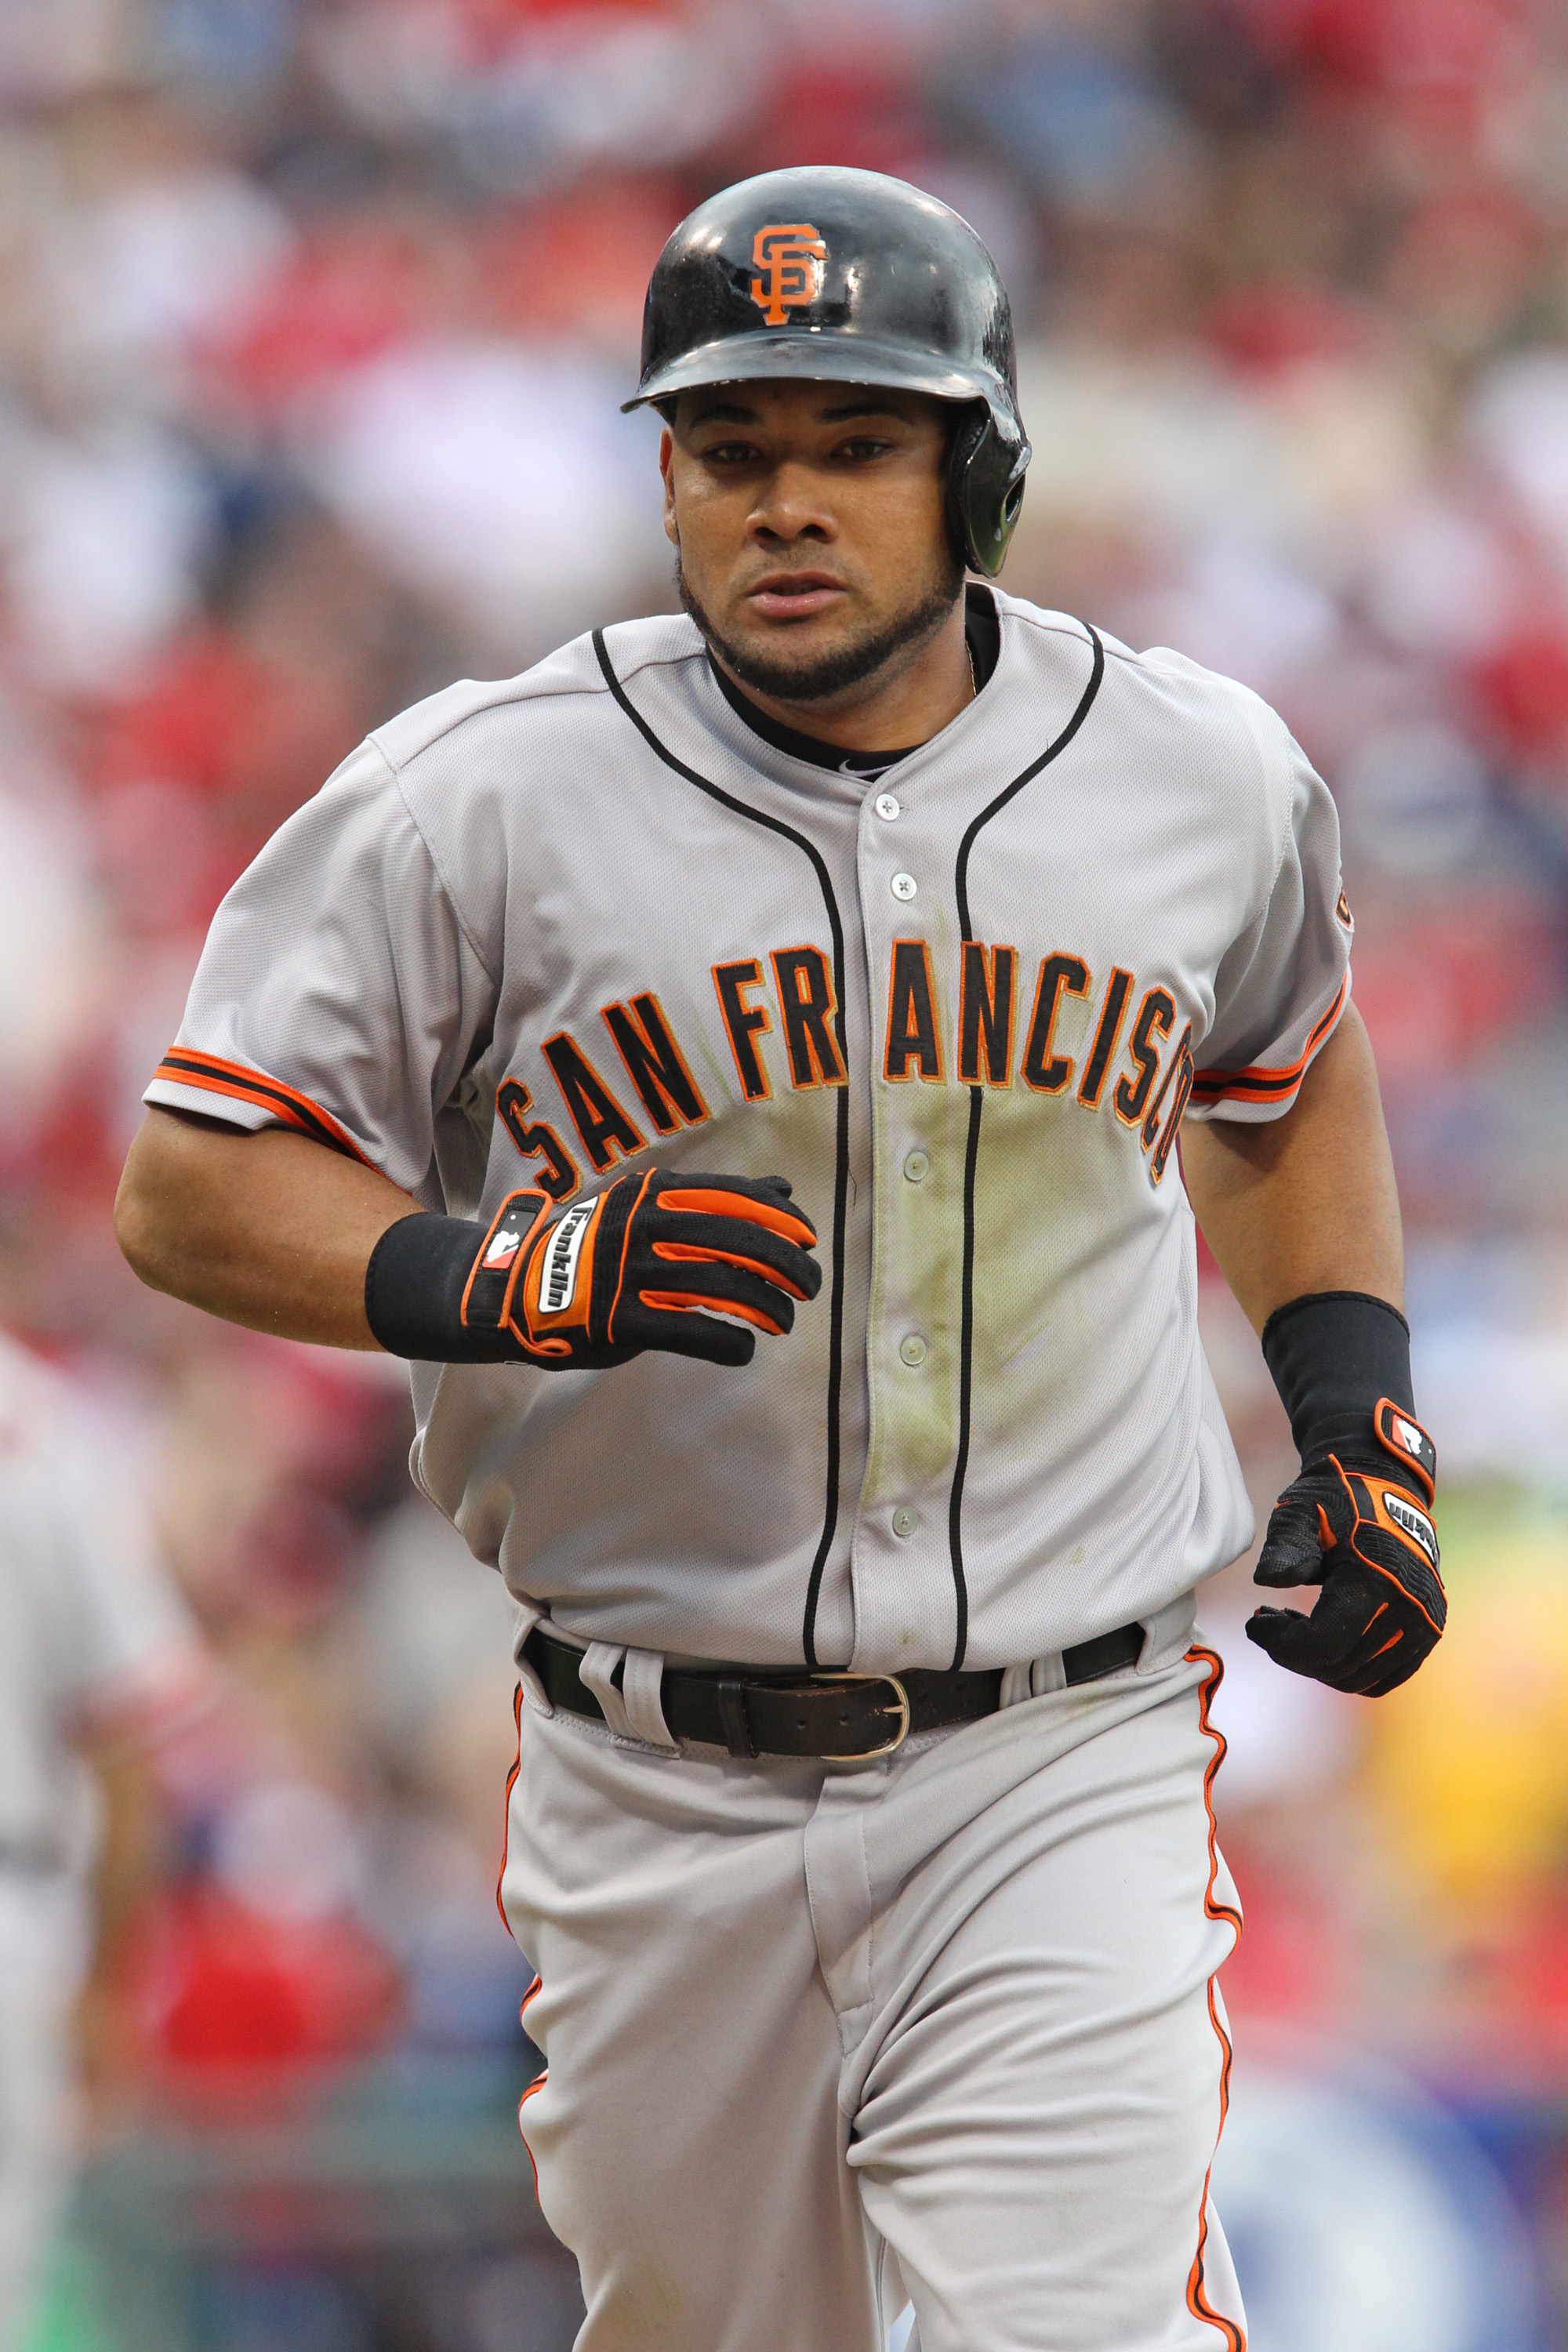 Melky Cabrera hit .346 for the Giants prior to his 50-game suspension. (Photo by Hunter Martin/Getty Images)